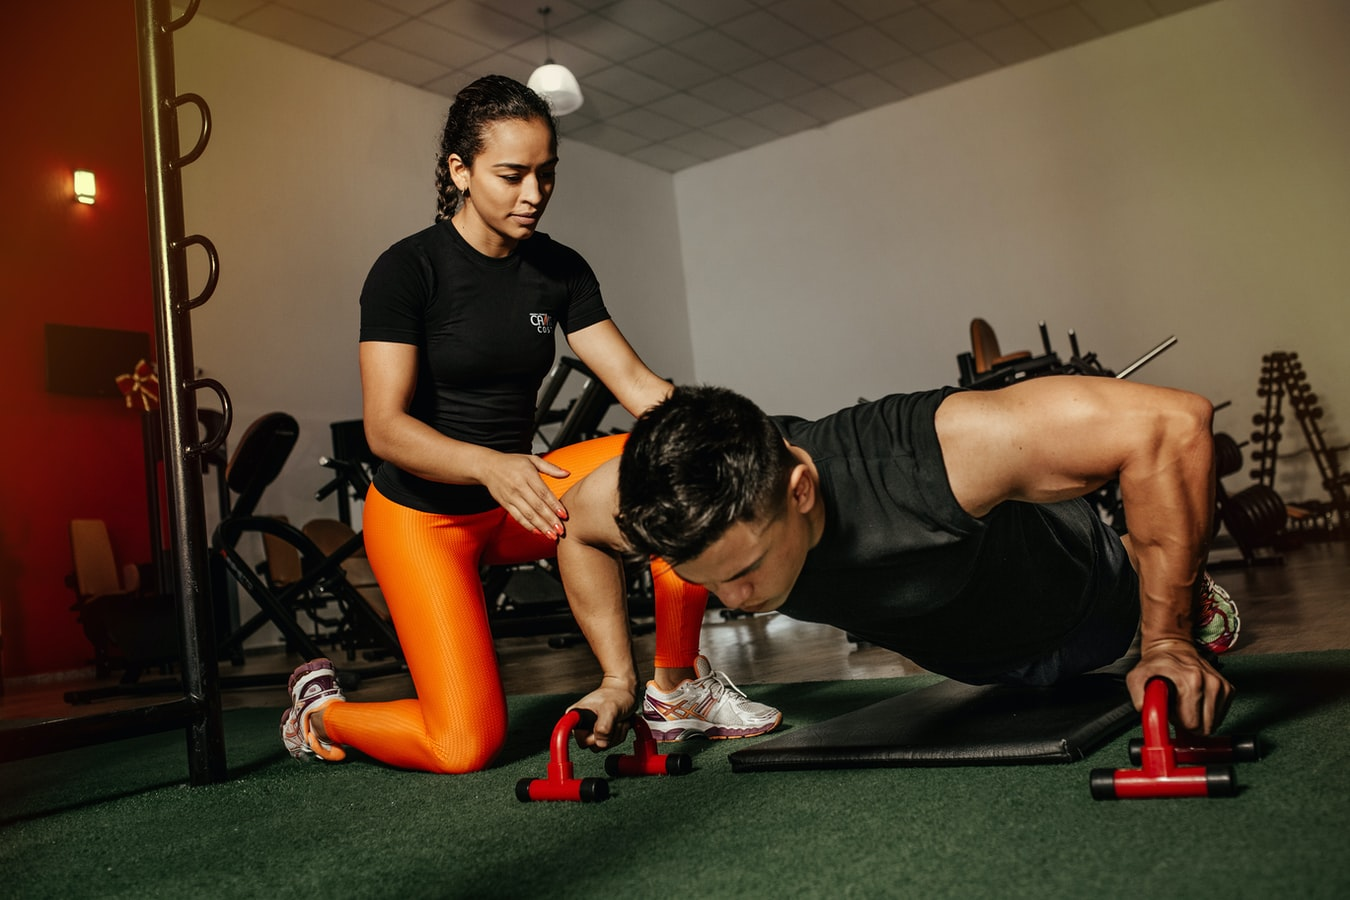 An athletic trainer working with a client